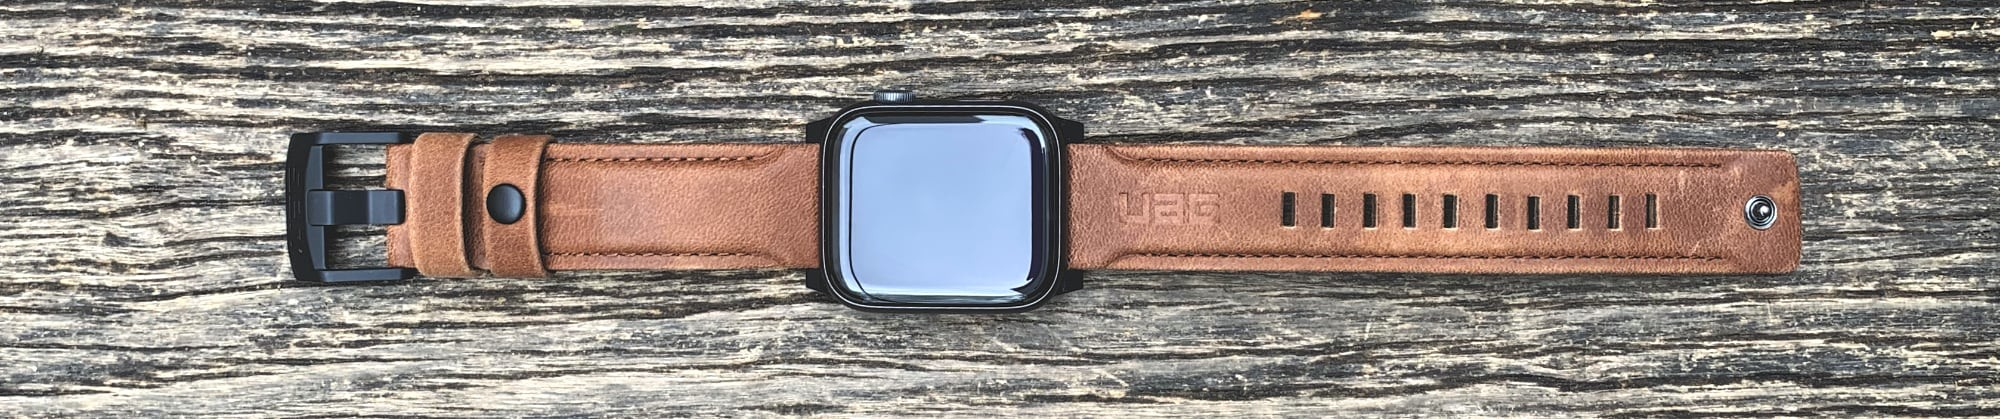 Foto de UAG Leather Strap para Apple Watch (8/18)